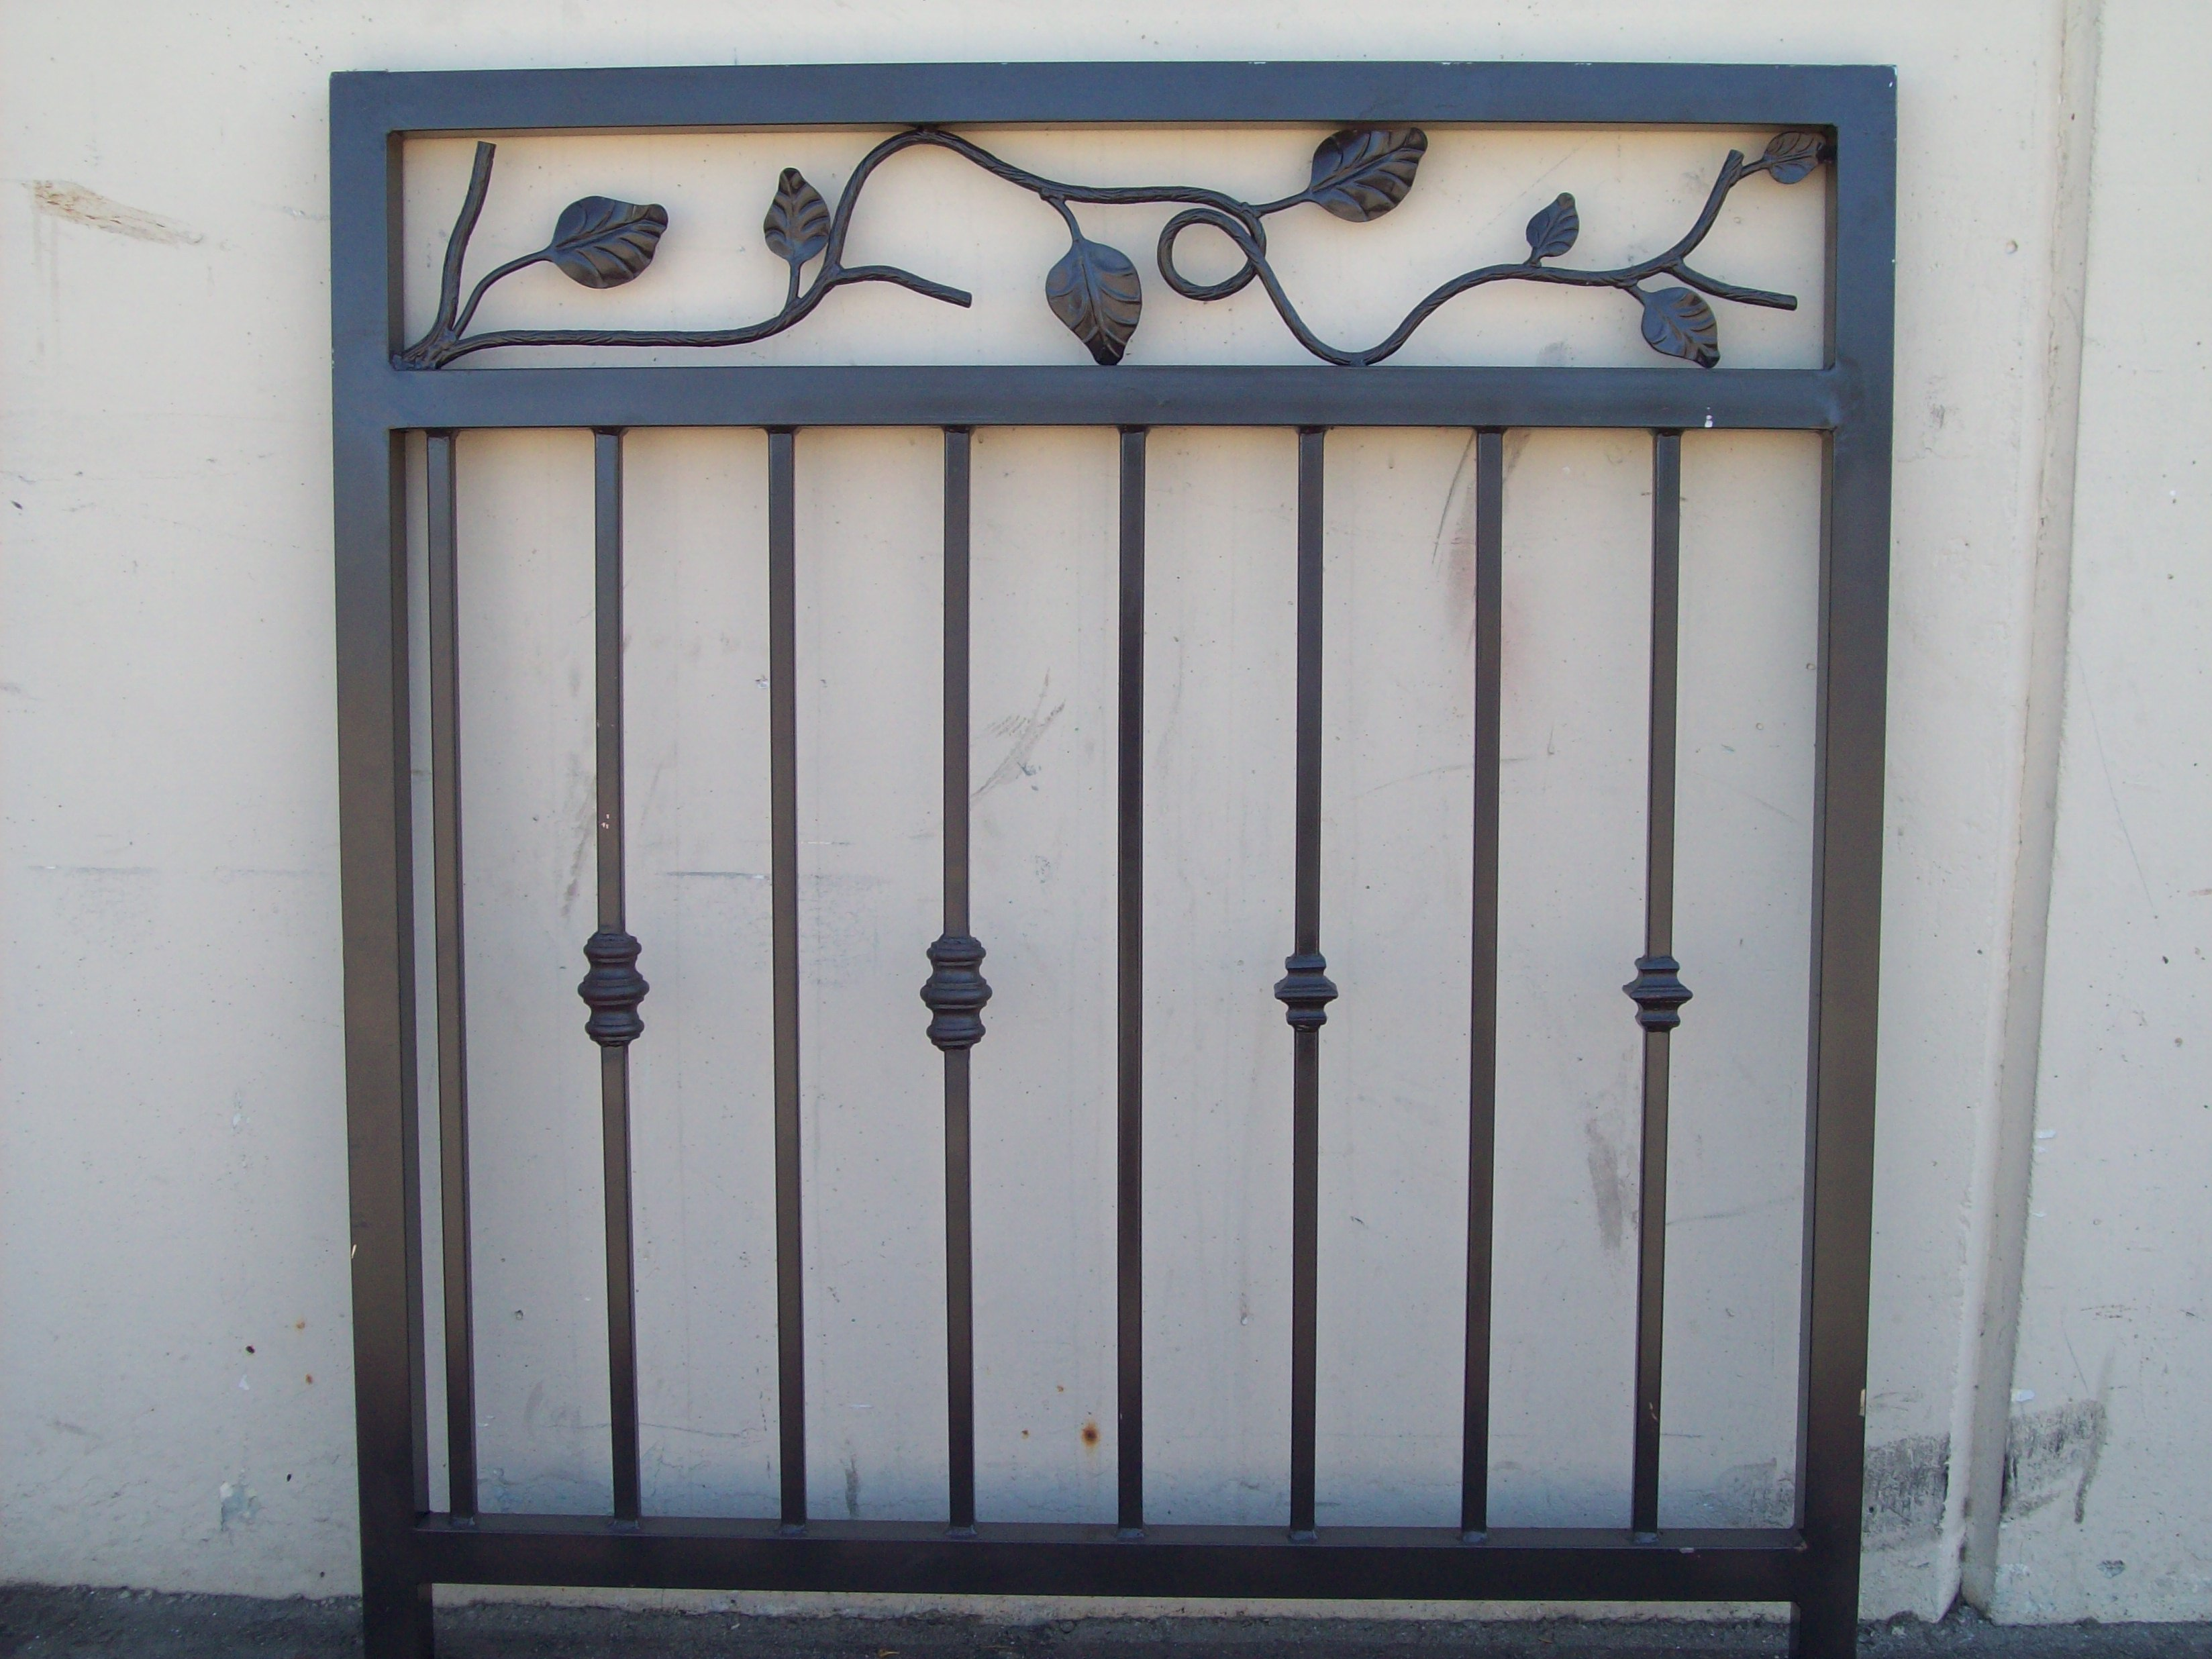 vs wrought tennessee valley decorative decor things iron fence steel to fences aluminum consider panels